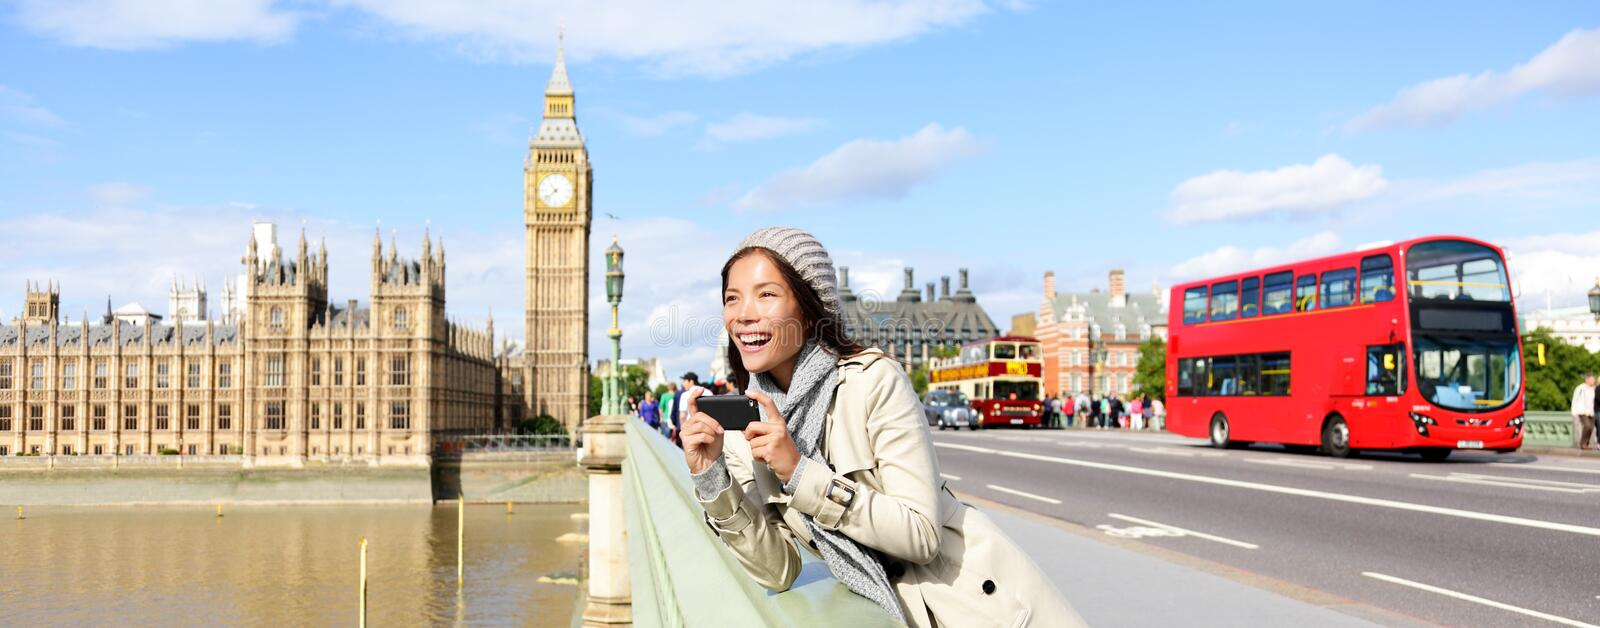 Download London Travel Banner - Woman And Big Ben Stock Photo - Image: 34740628